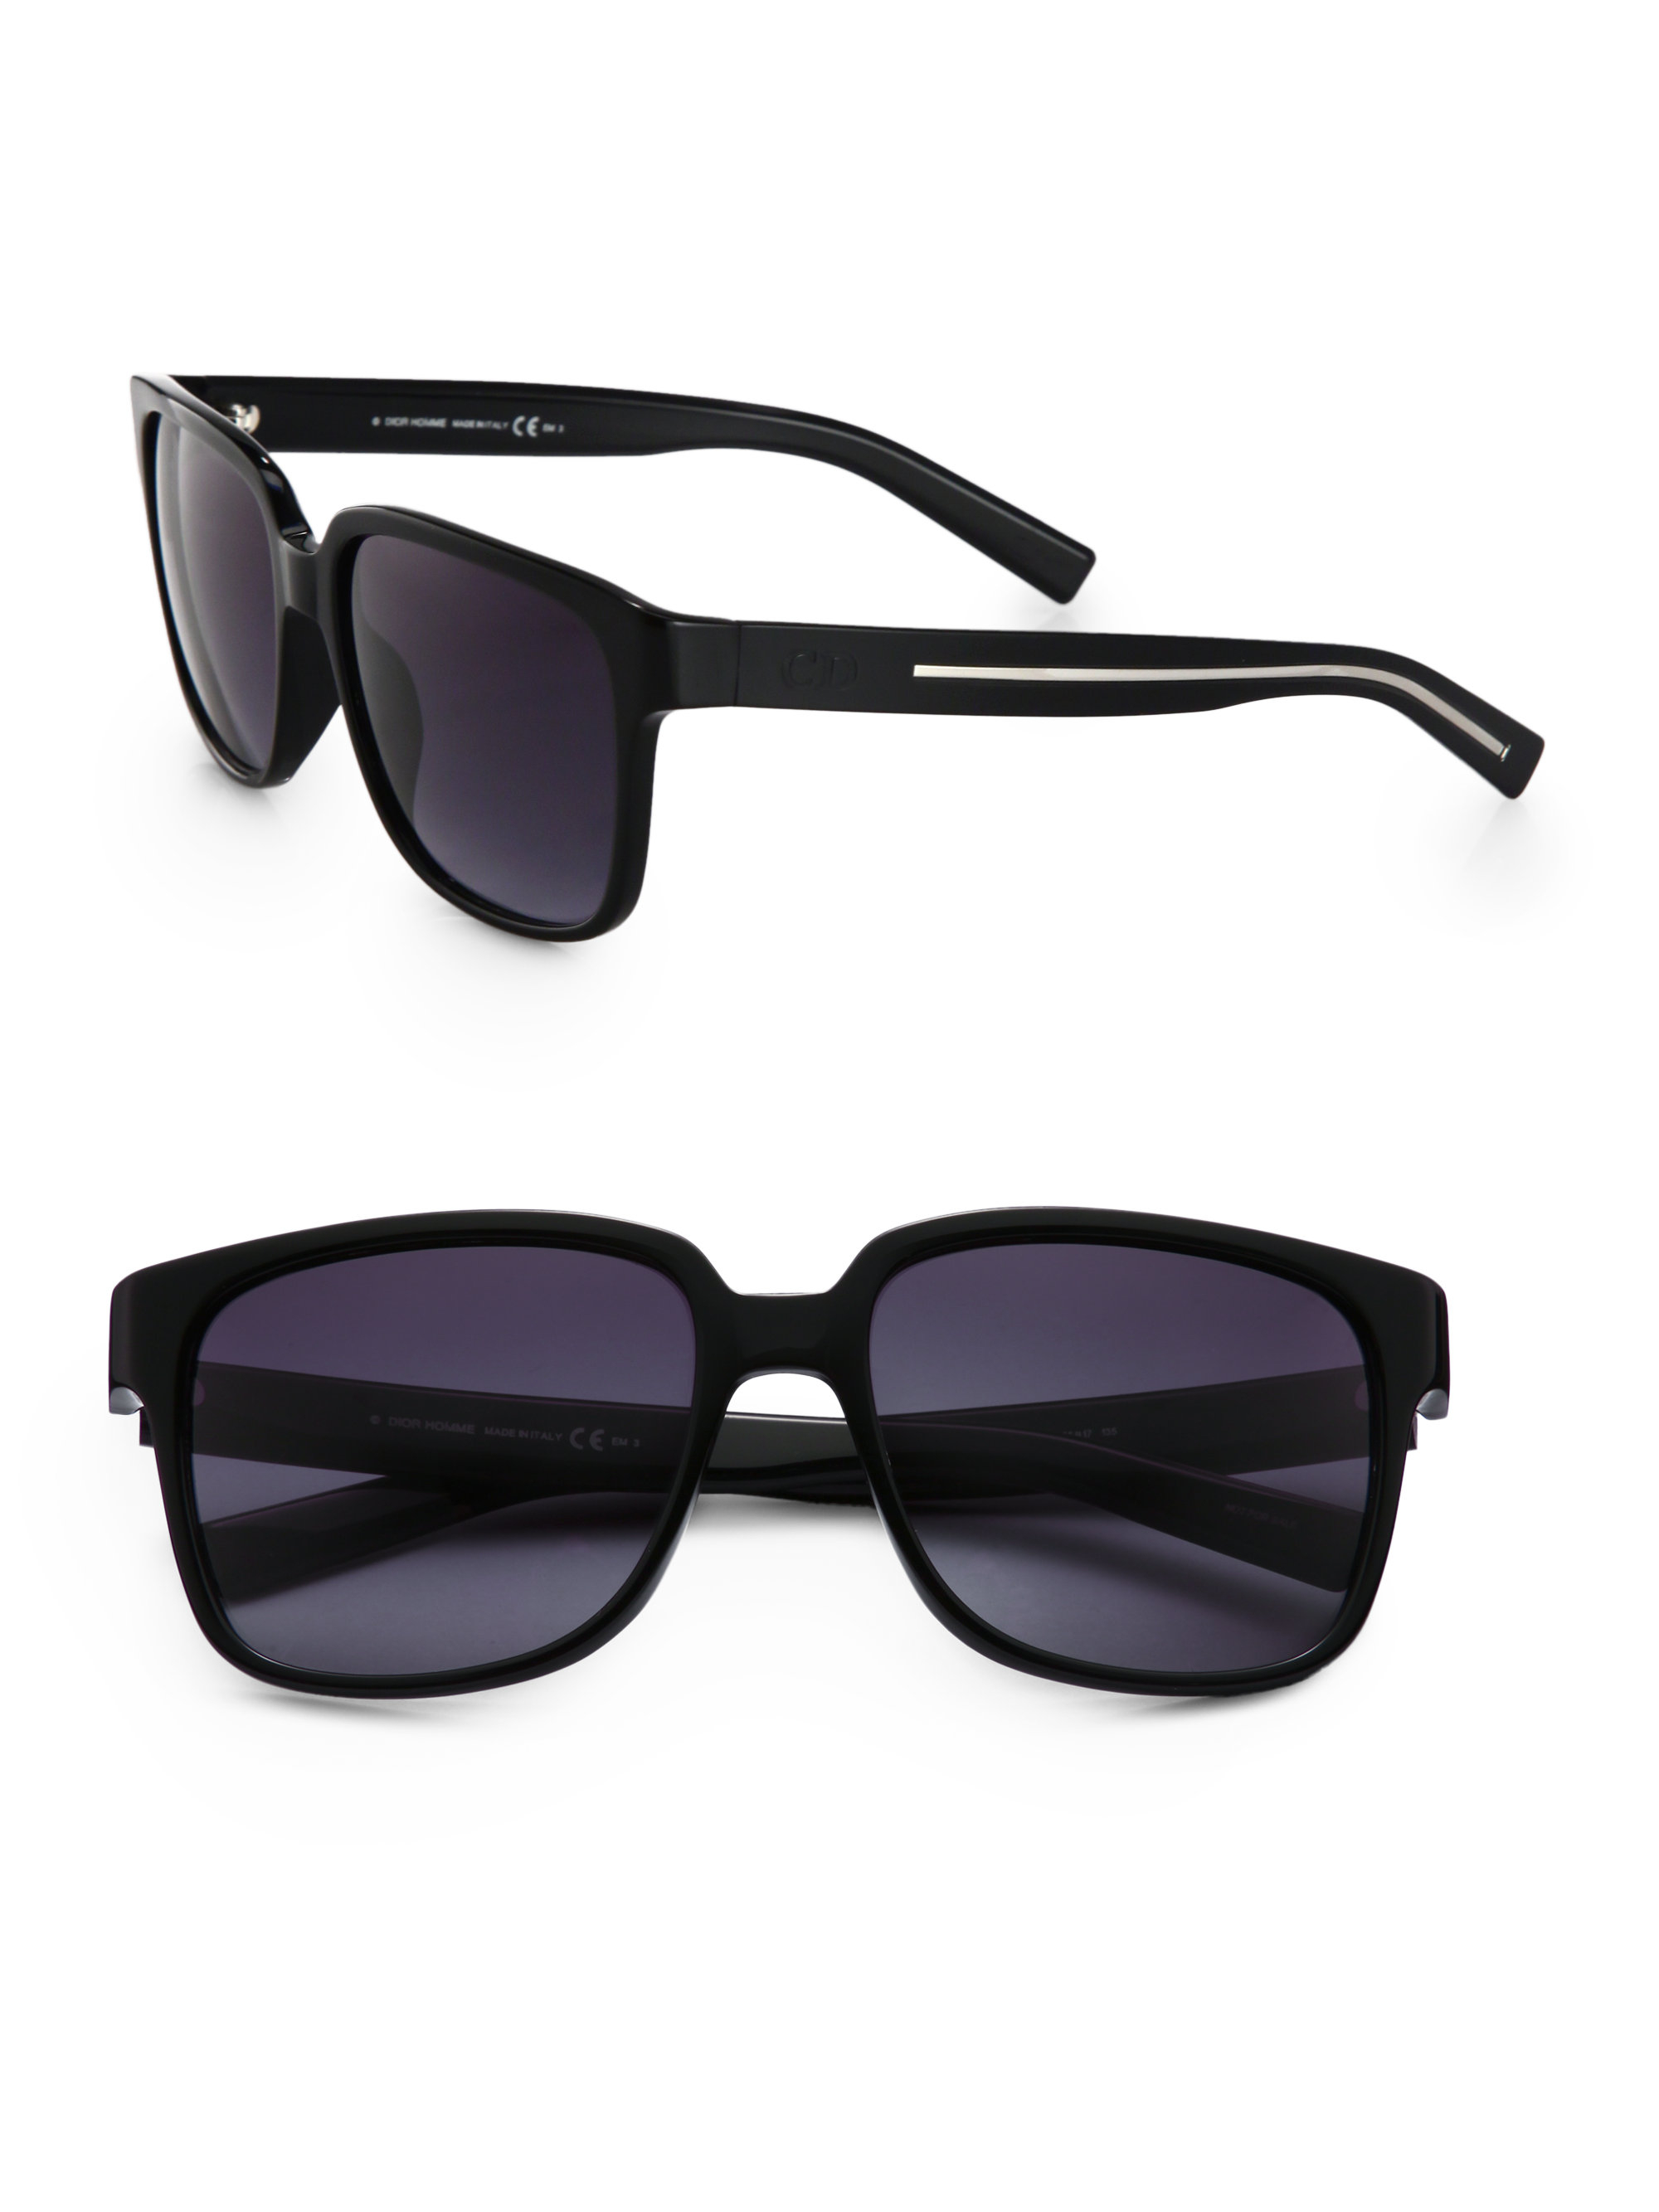 c9433bdc395 Dior Homme Black Tie Sunglasses in Black for Men - Lyst